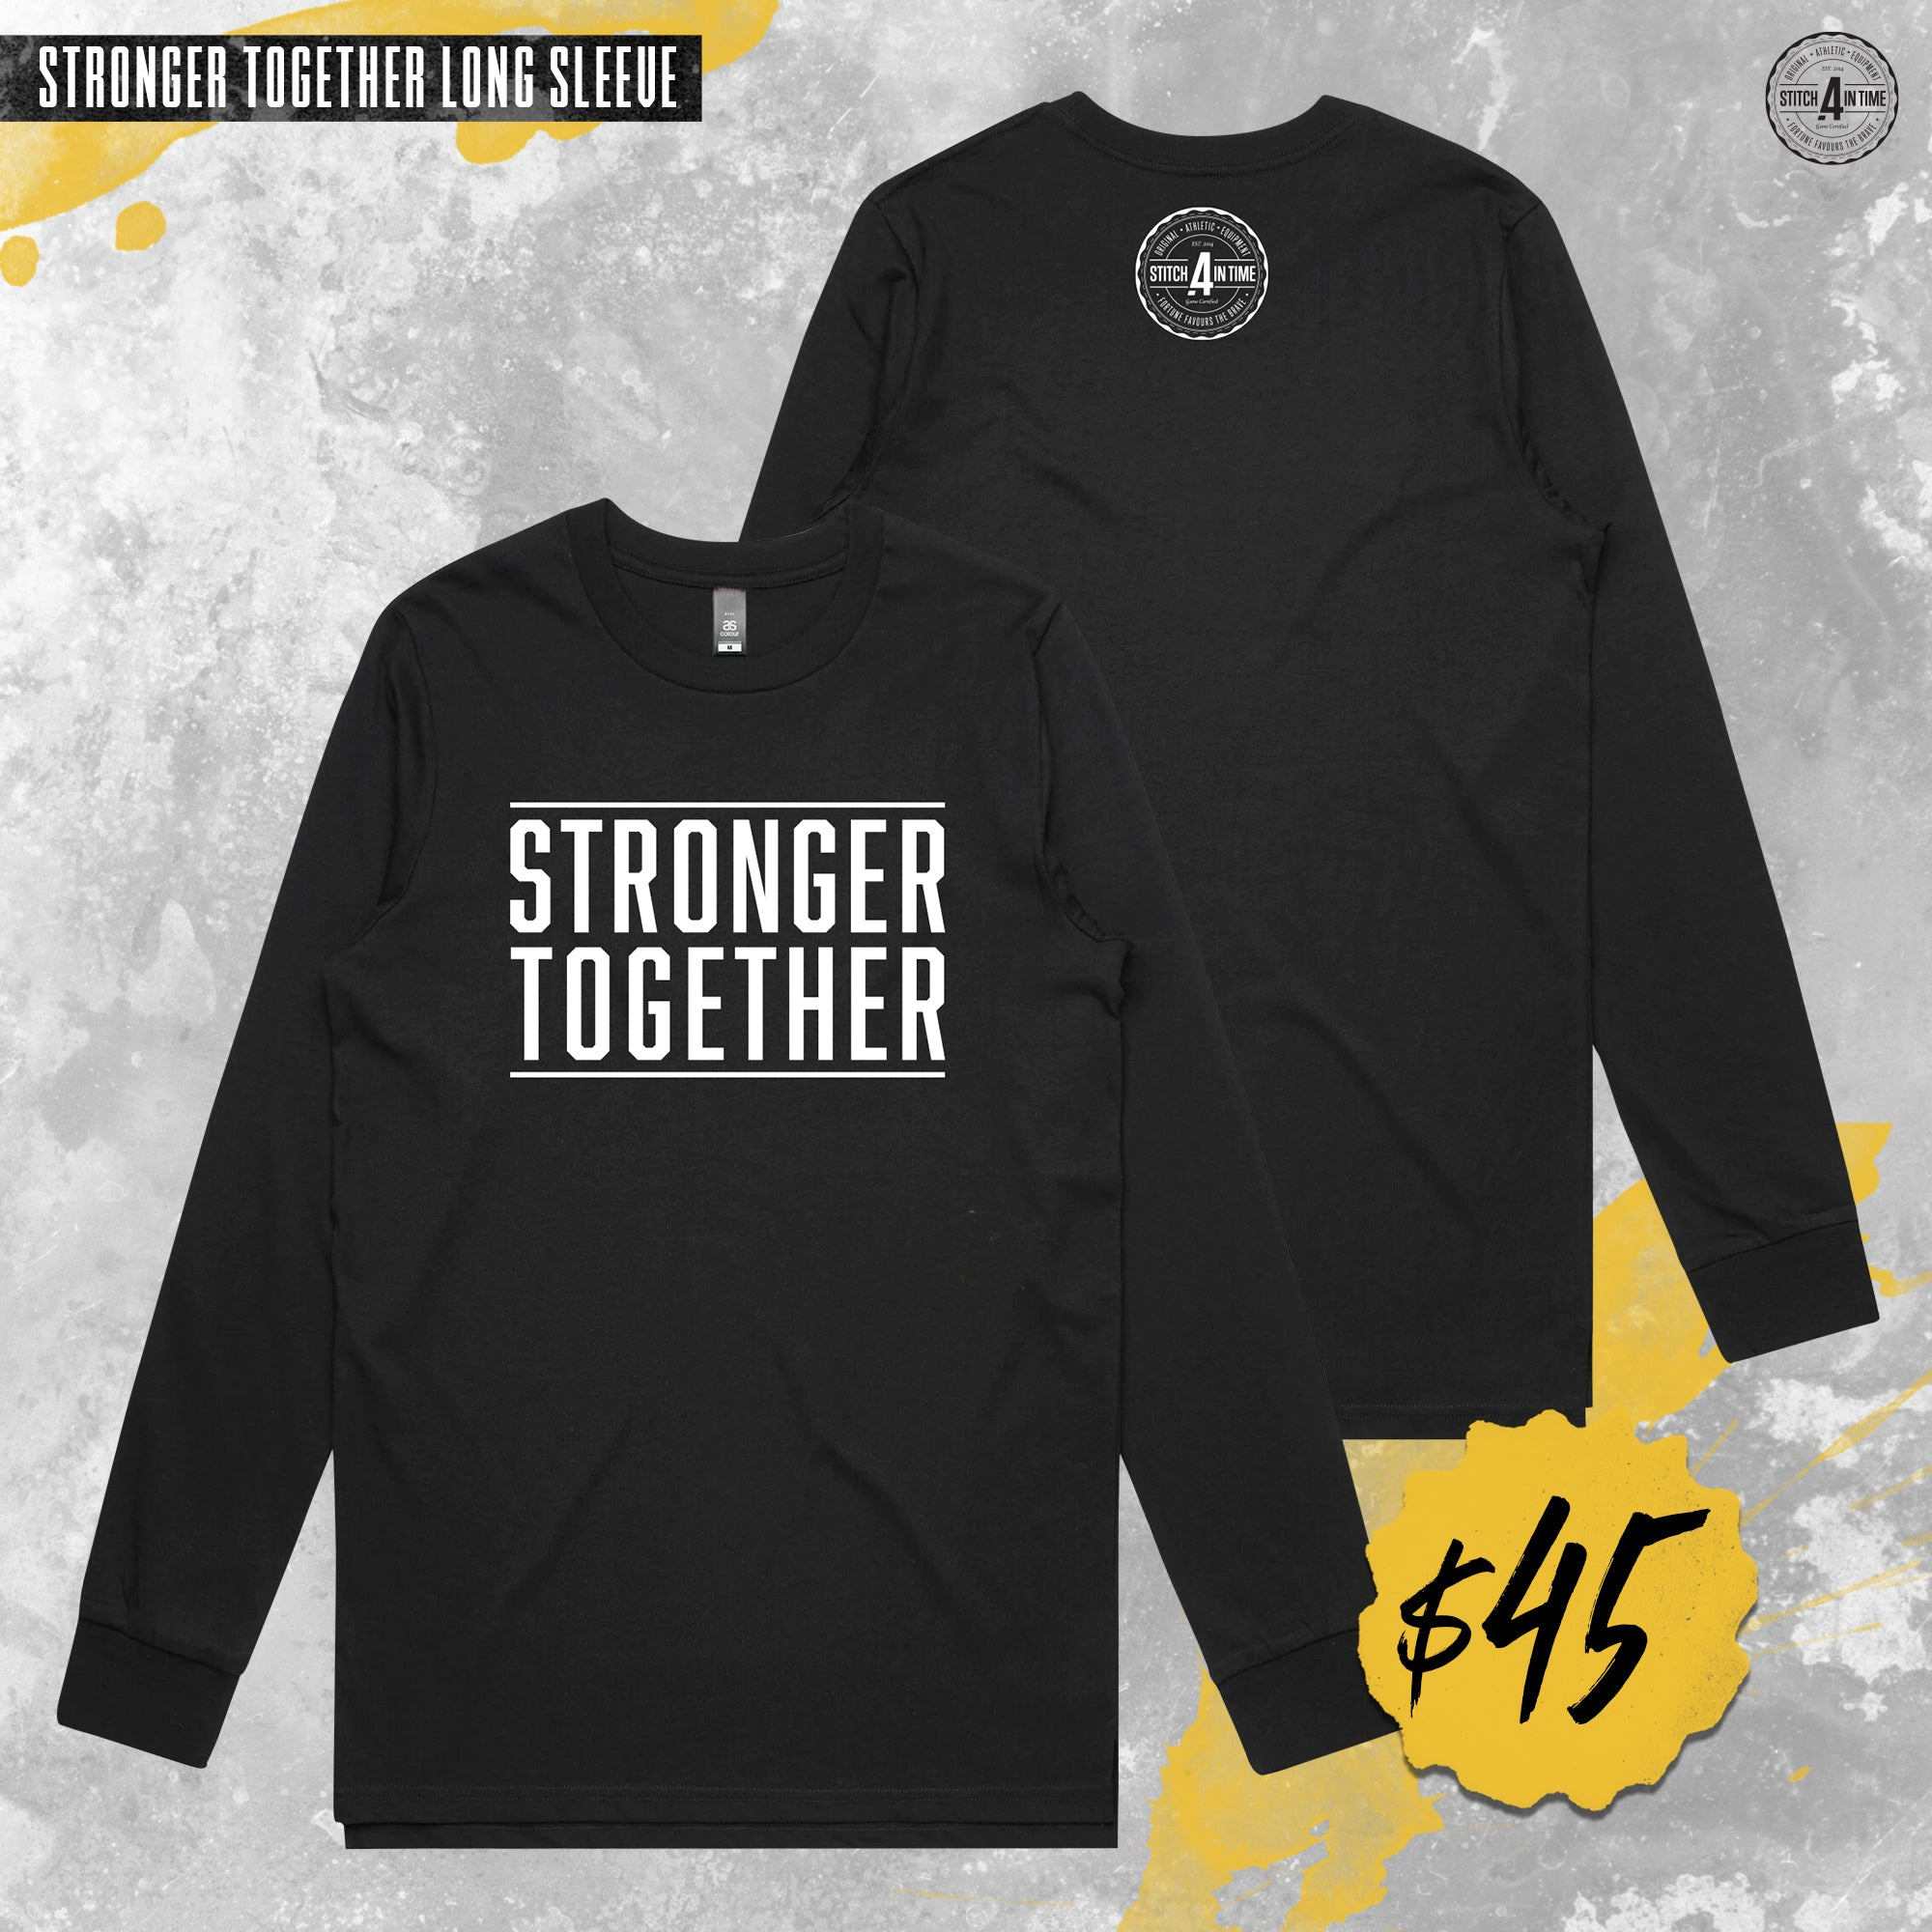 Stronger Together Long Sleeve Tee (Black)